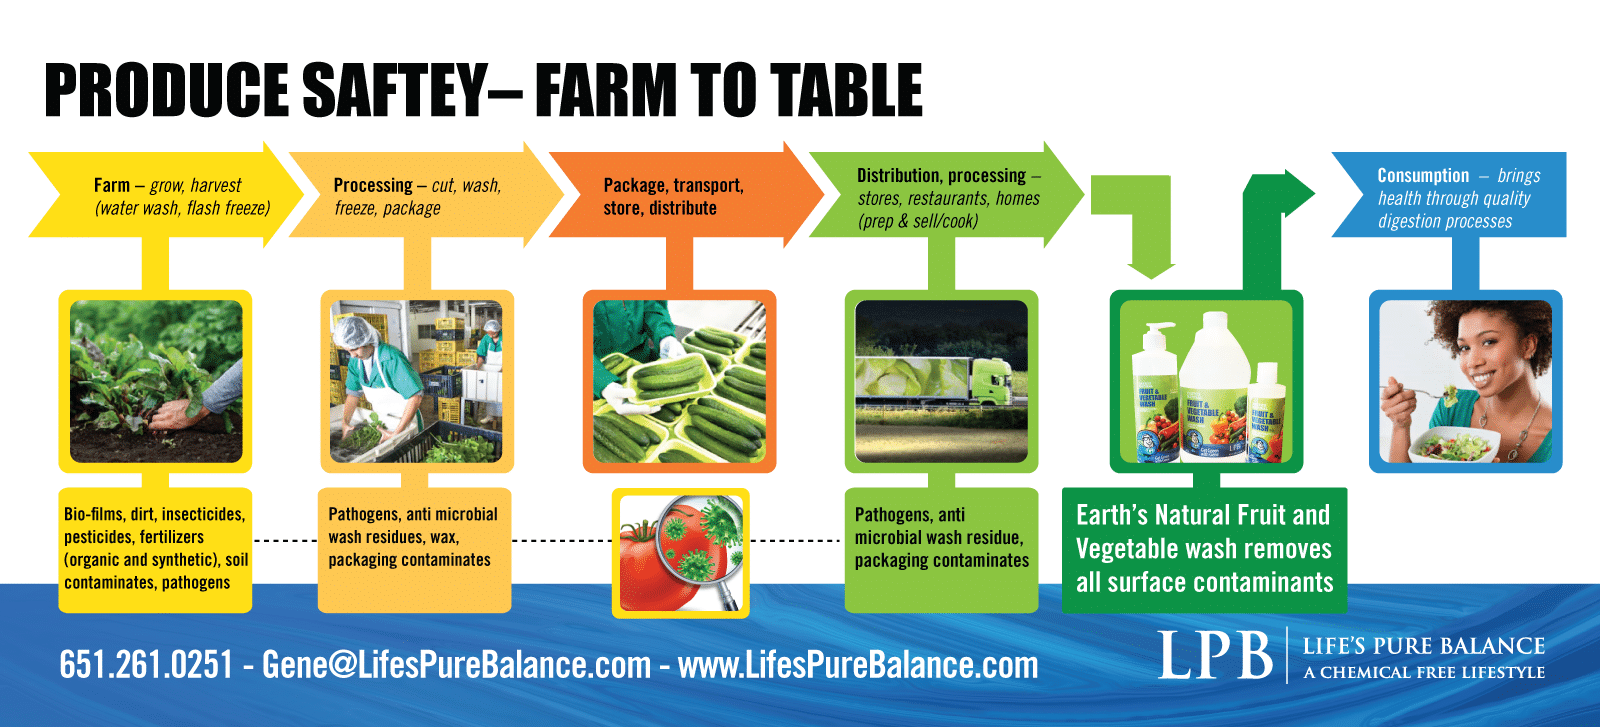 Fruit and Vegetable produce Safety is very important from Farm to Table.